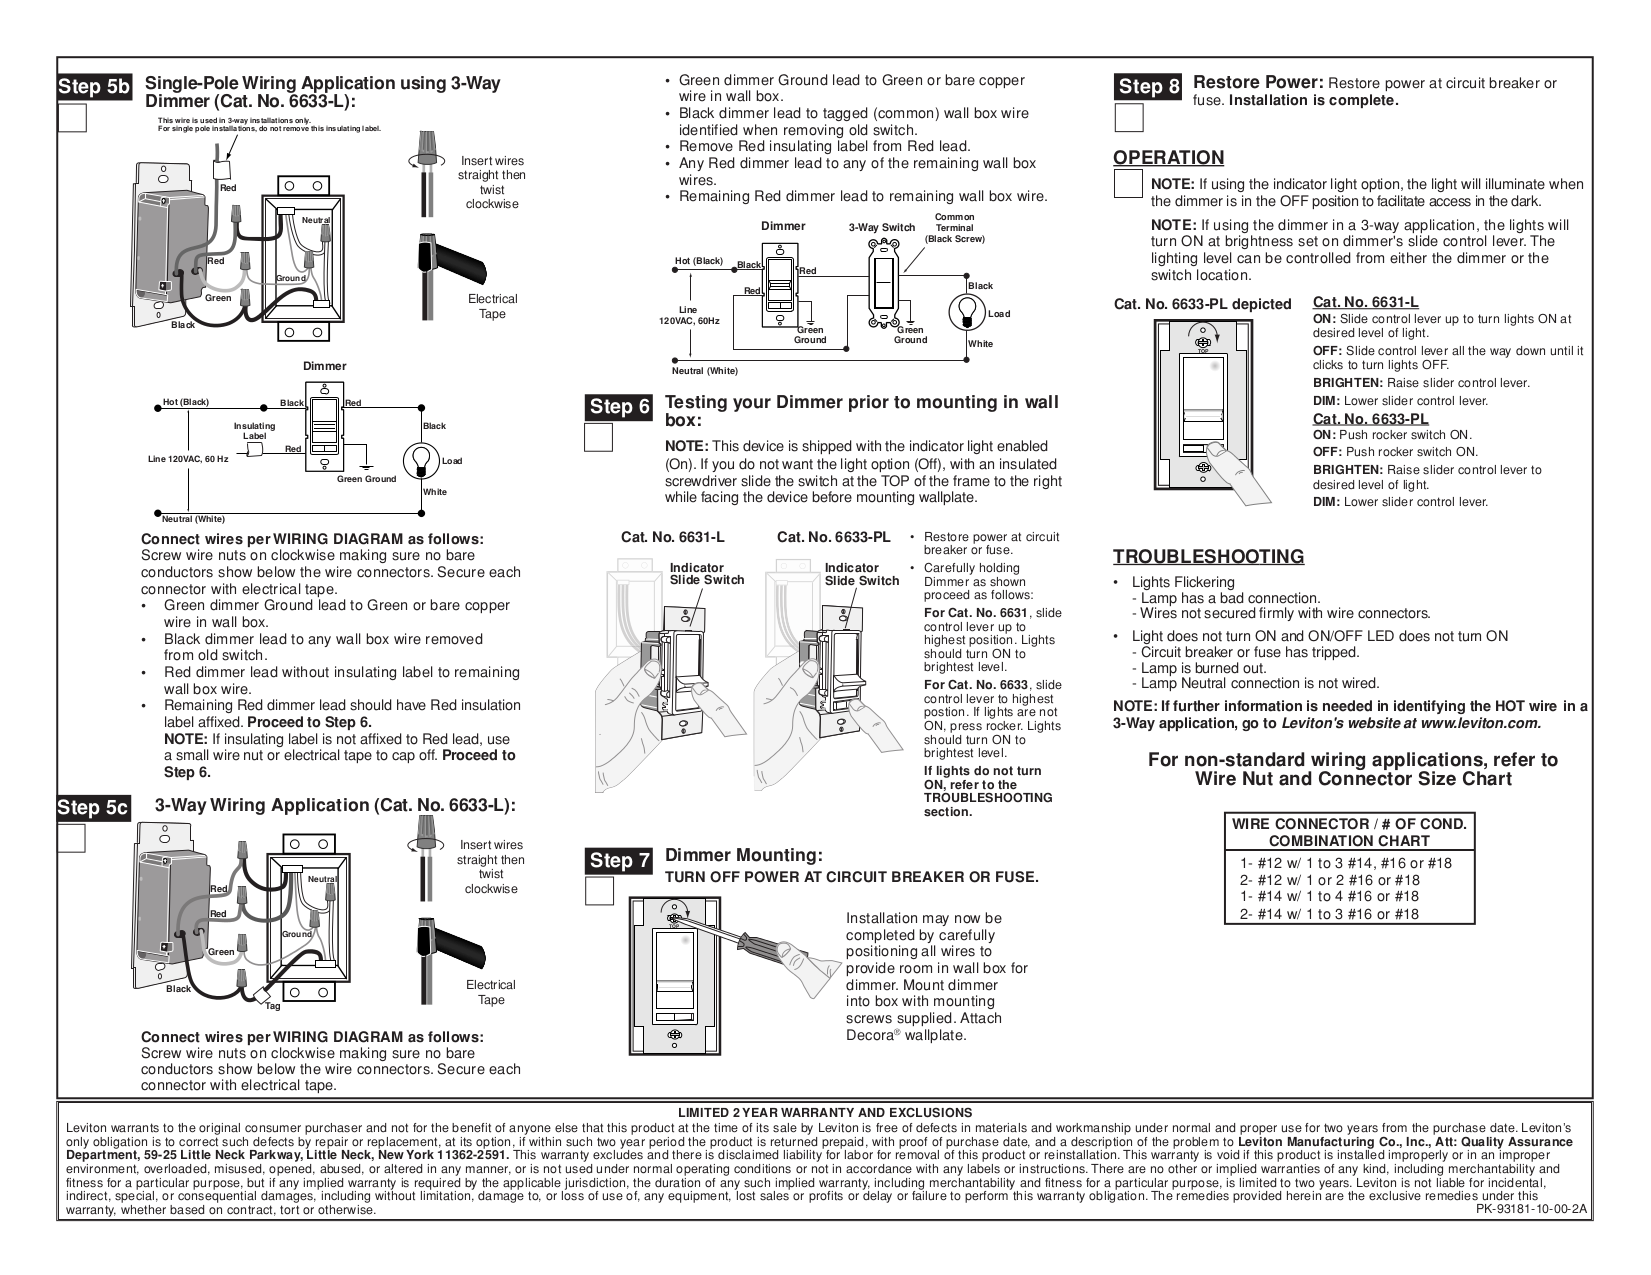 [DIAGRAM_34OR]  DIAGRAM] Leviton 6633 P Wiring Diagram FULL Version HD Quality Wiring  Diagram - KITPROGSCHEMATIC8127.BEAUTYWELL.IT | Leviton 6633 P Wiring Diagram |  | kitprogschematic8127.beautywell.it